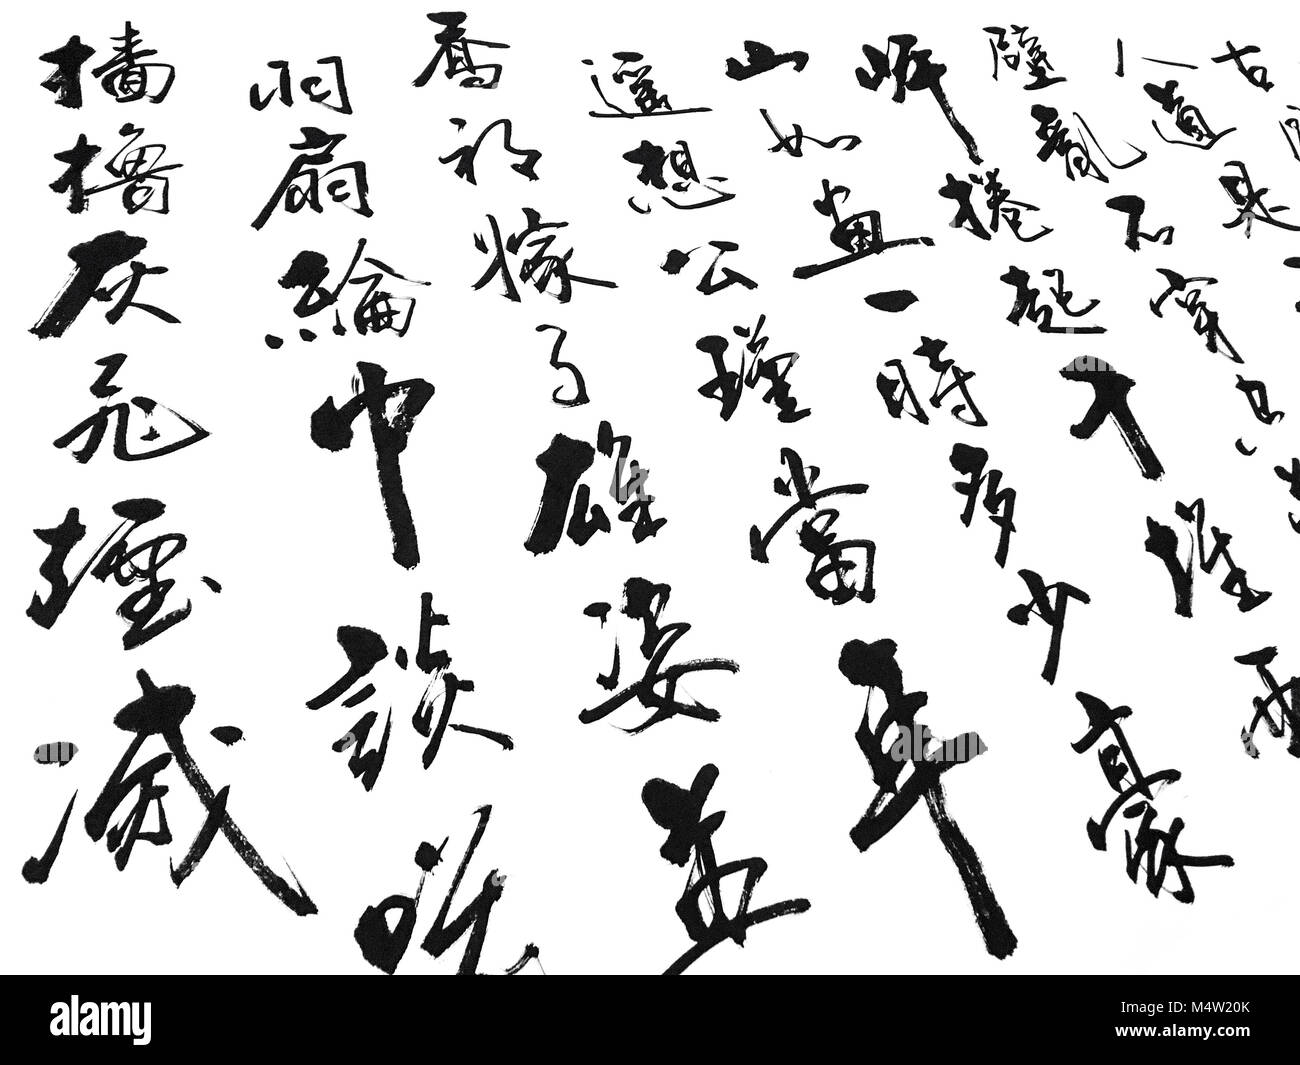 A Picture Of A Paper With Many Traditional Chinese Symbols Written